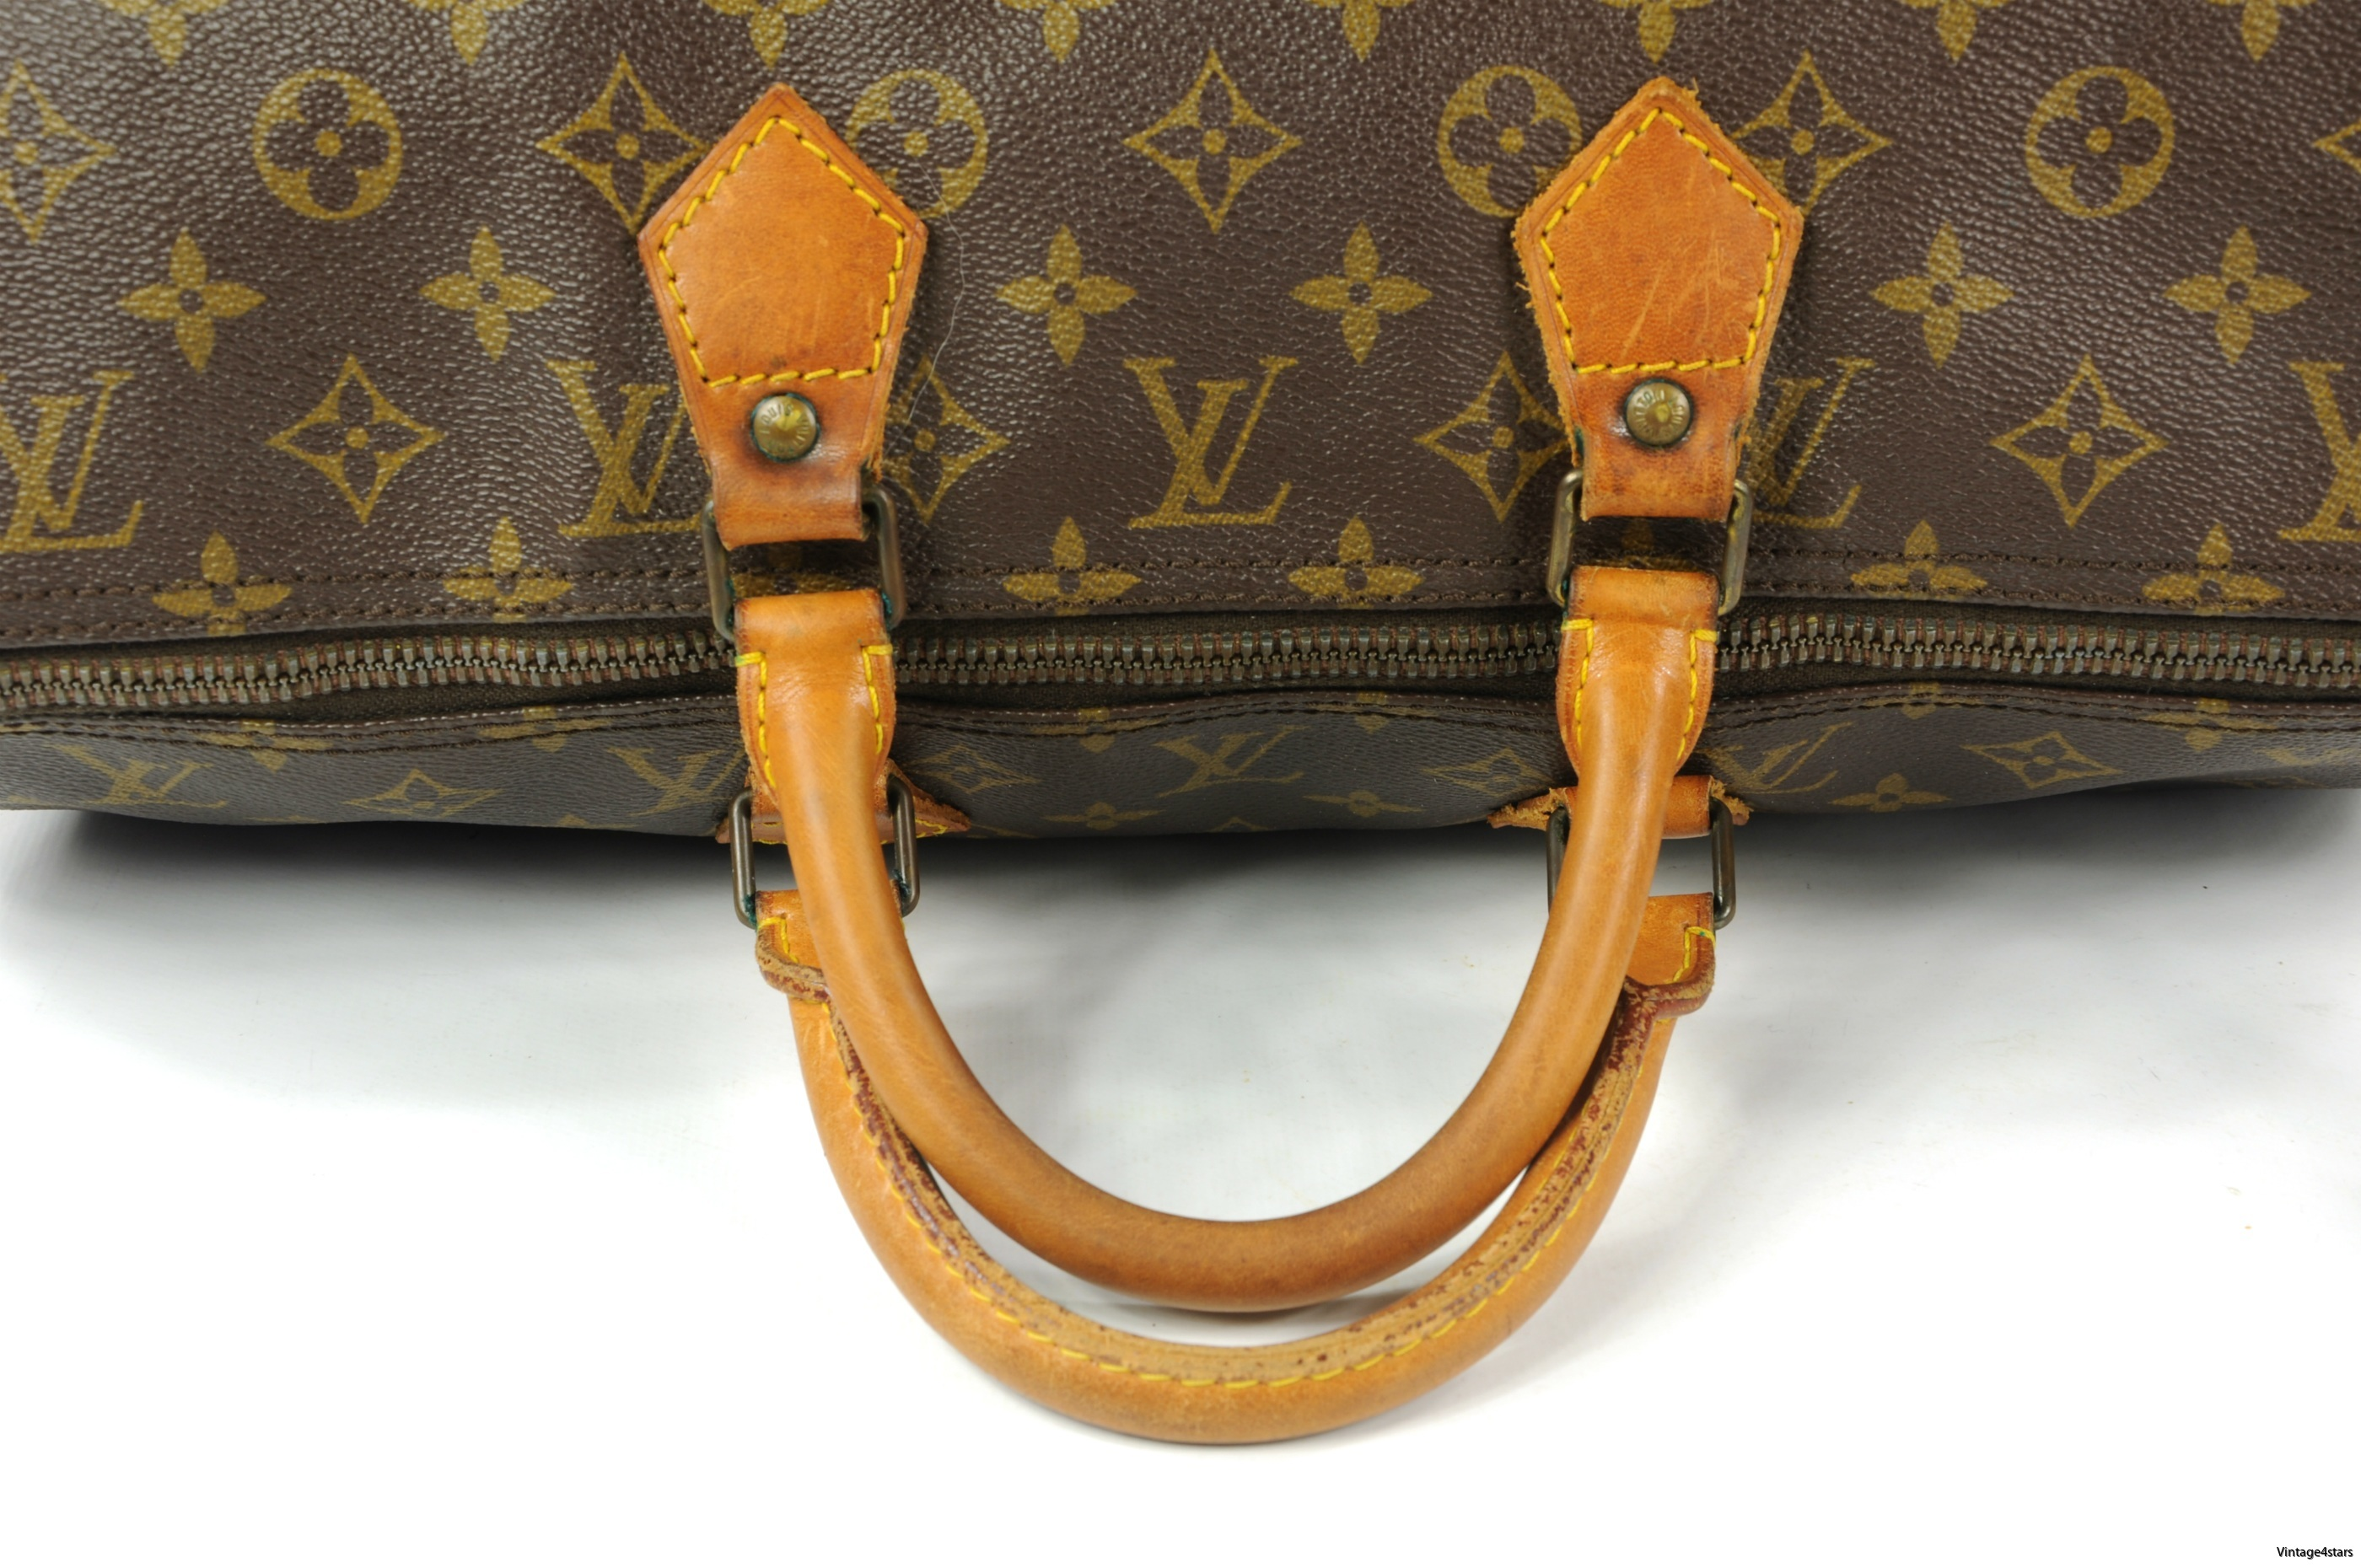 Louis Vutton Speedy 40 6